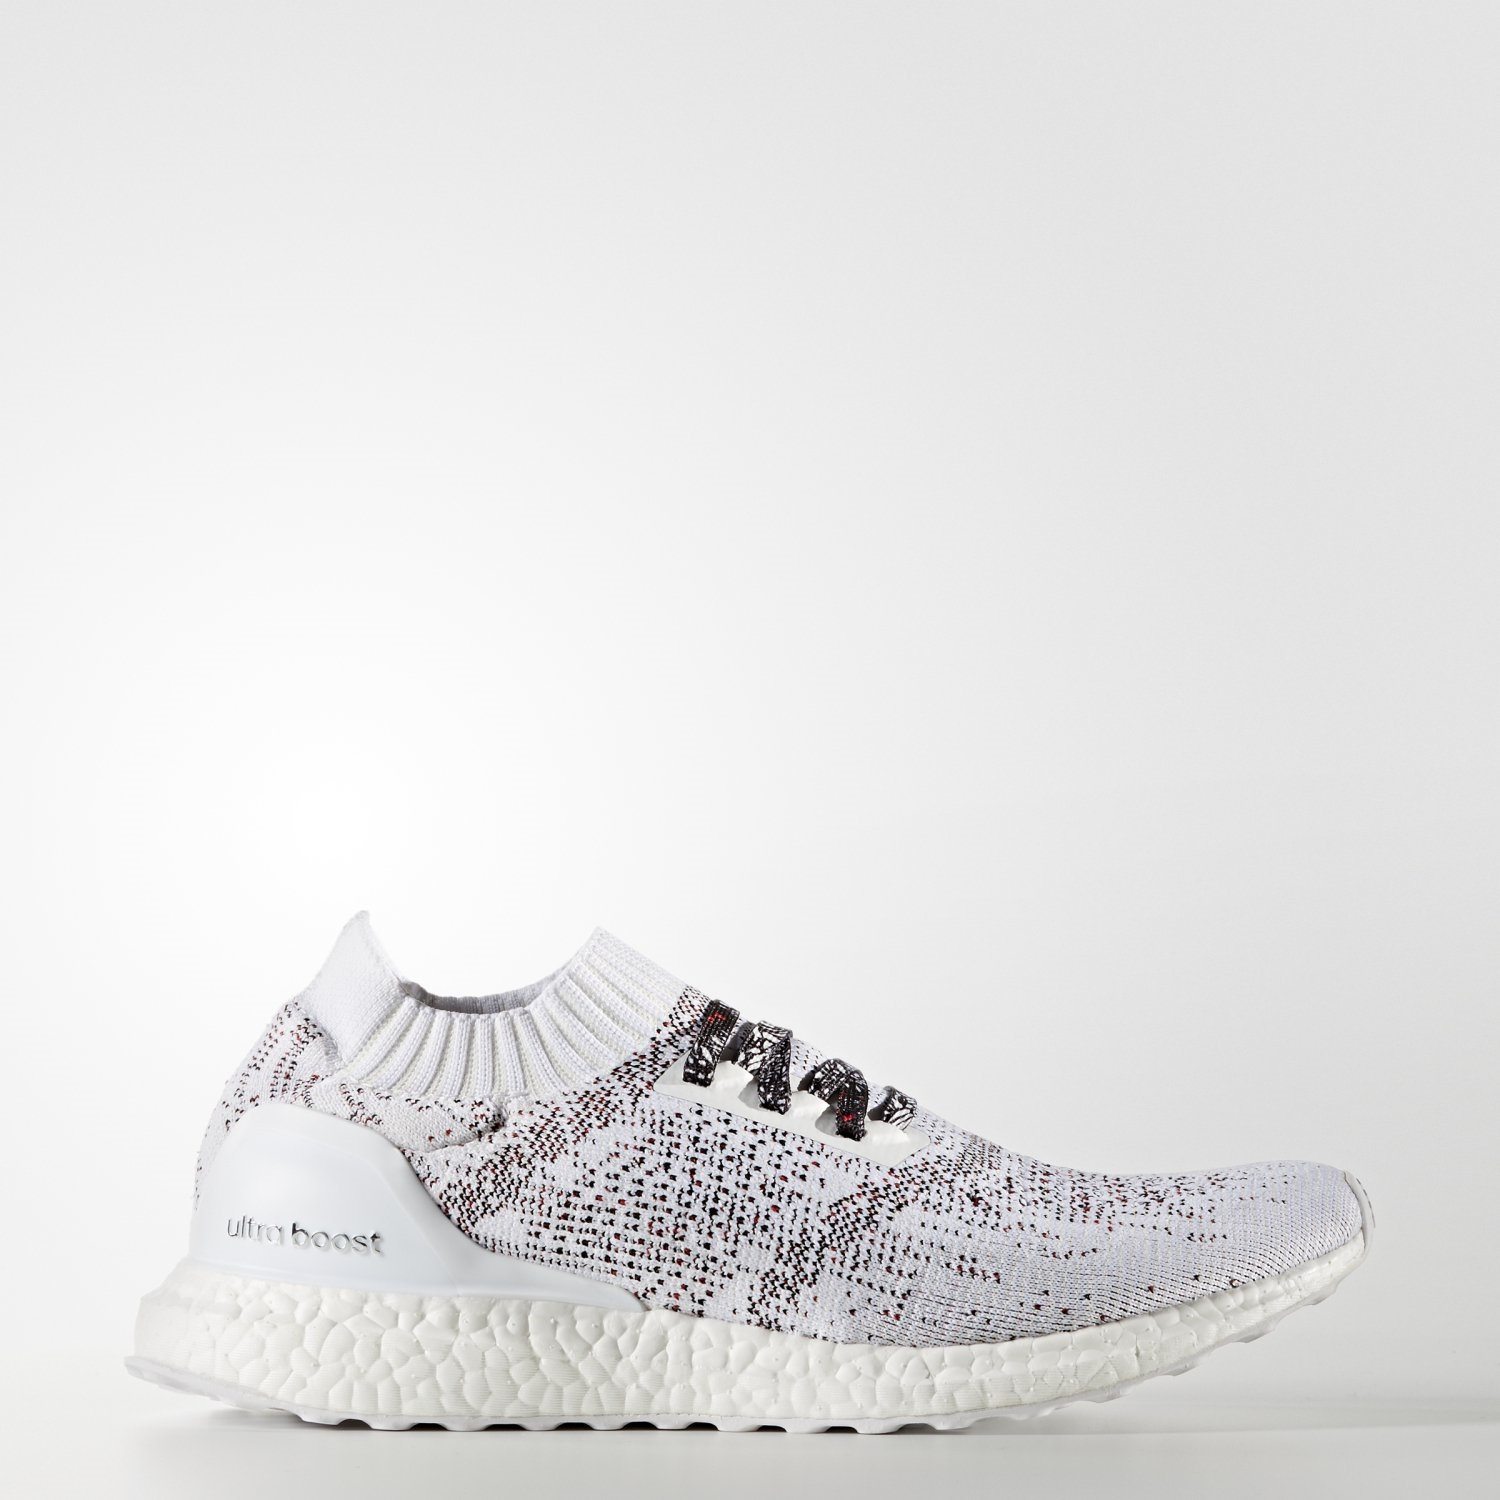 adidas-ultra-boost-uncaged-cny-ltd-release-20170127